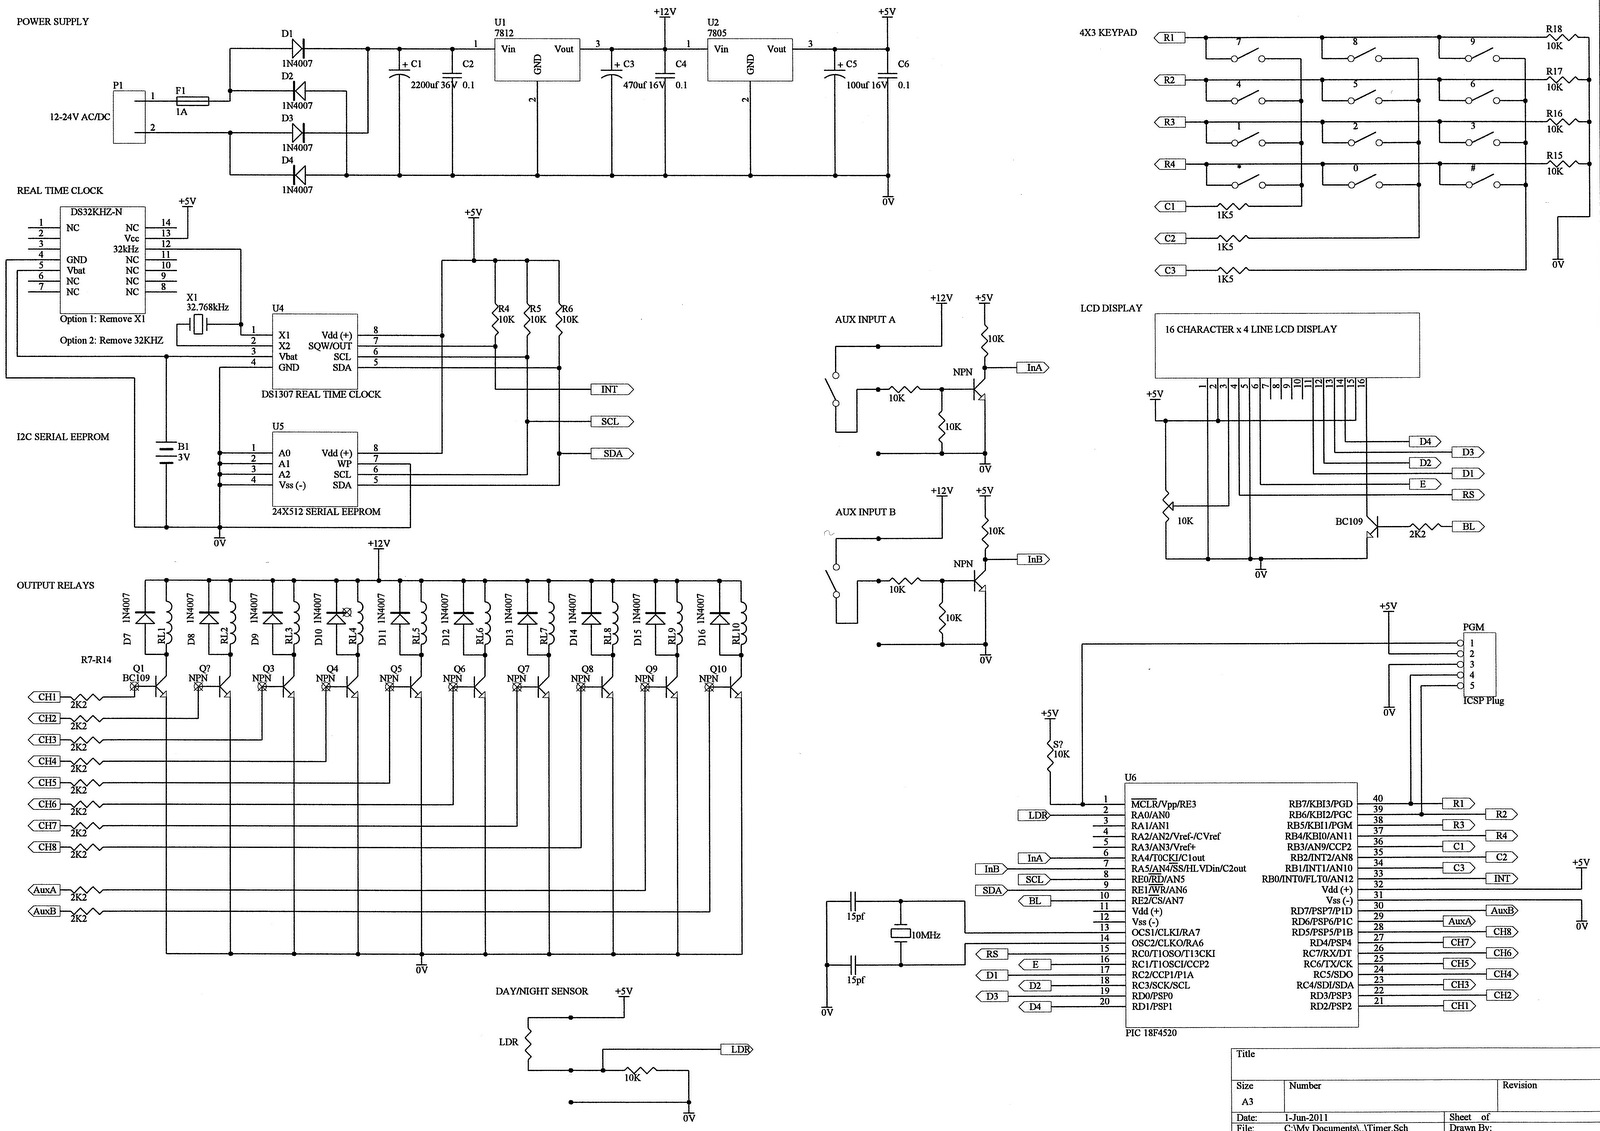 8 Channel Programmable Timer Ic 7805 Turnon Vr Circuit Diagram Electronic Diagrams Consists Of A Rectifier Smoothing Capacitor And 1 Amp Fuse For Overload Protection This Supply Is Then Regulated By 7812 Regulator